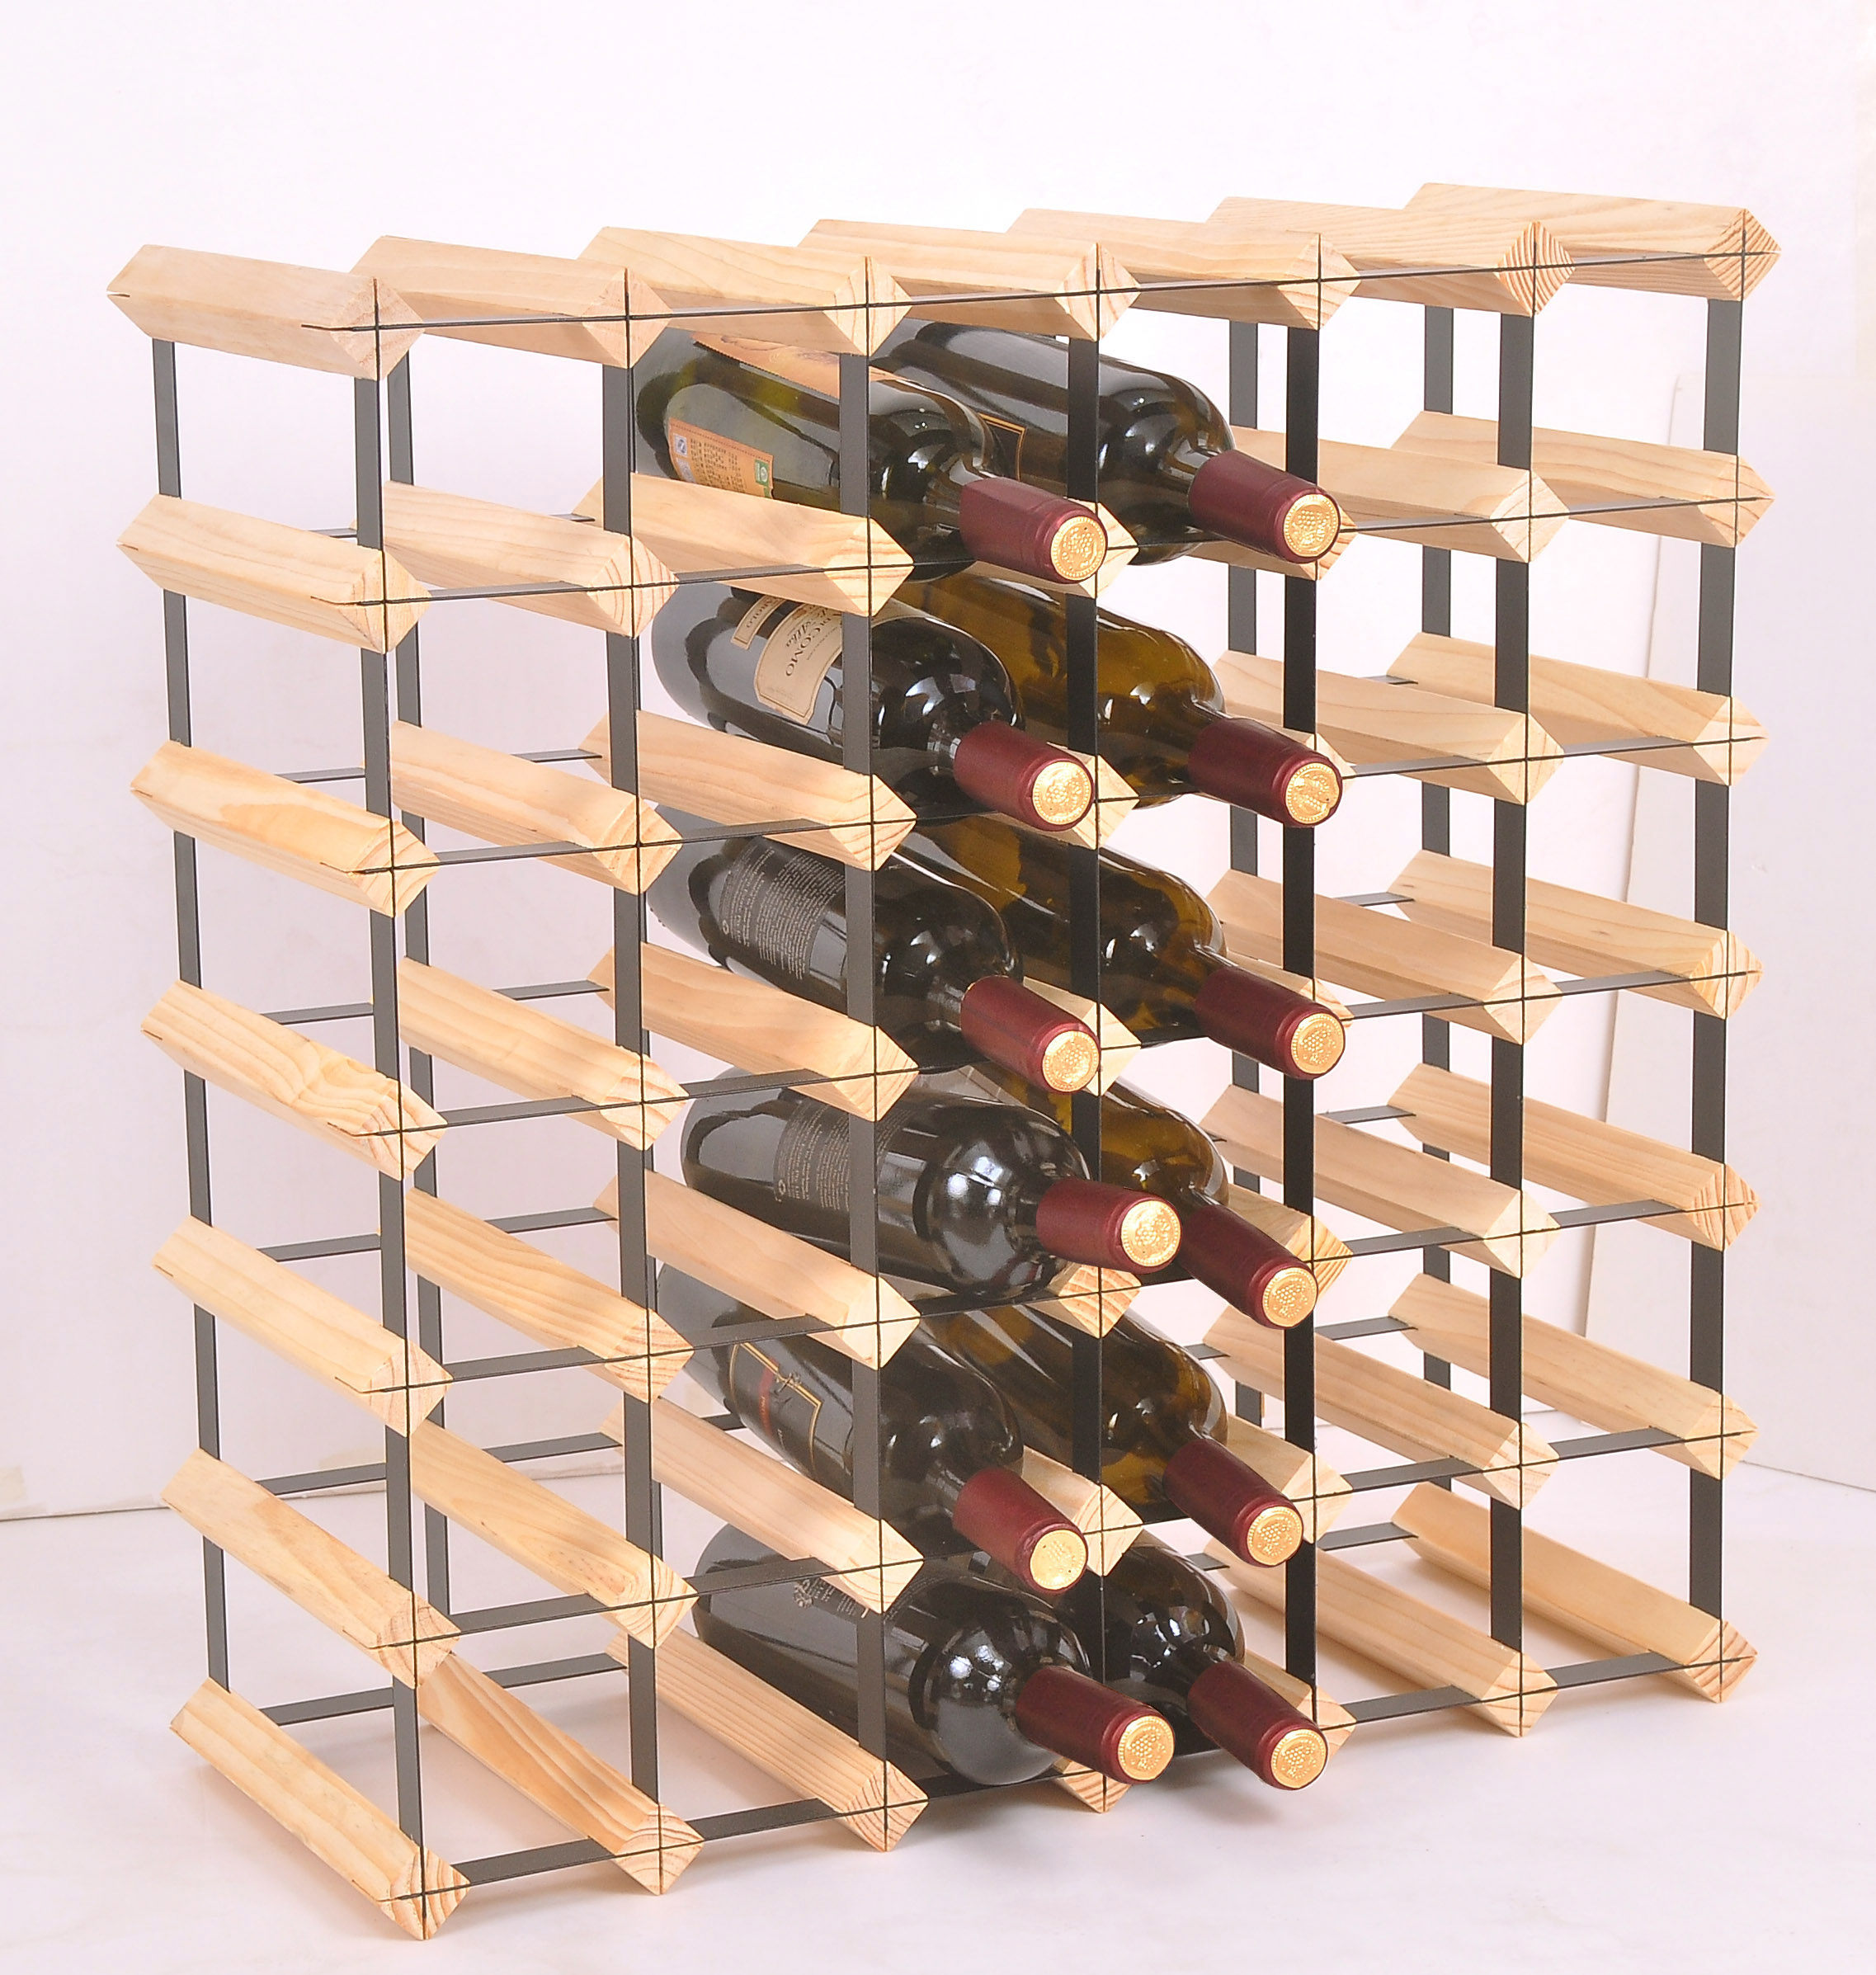 42 Bottle Timber Wine Rack - Complete Wooden Wine Storage System  Z2706